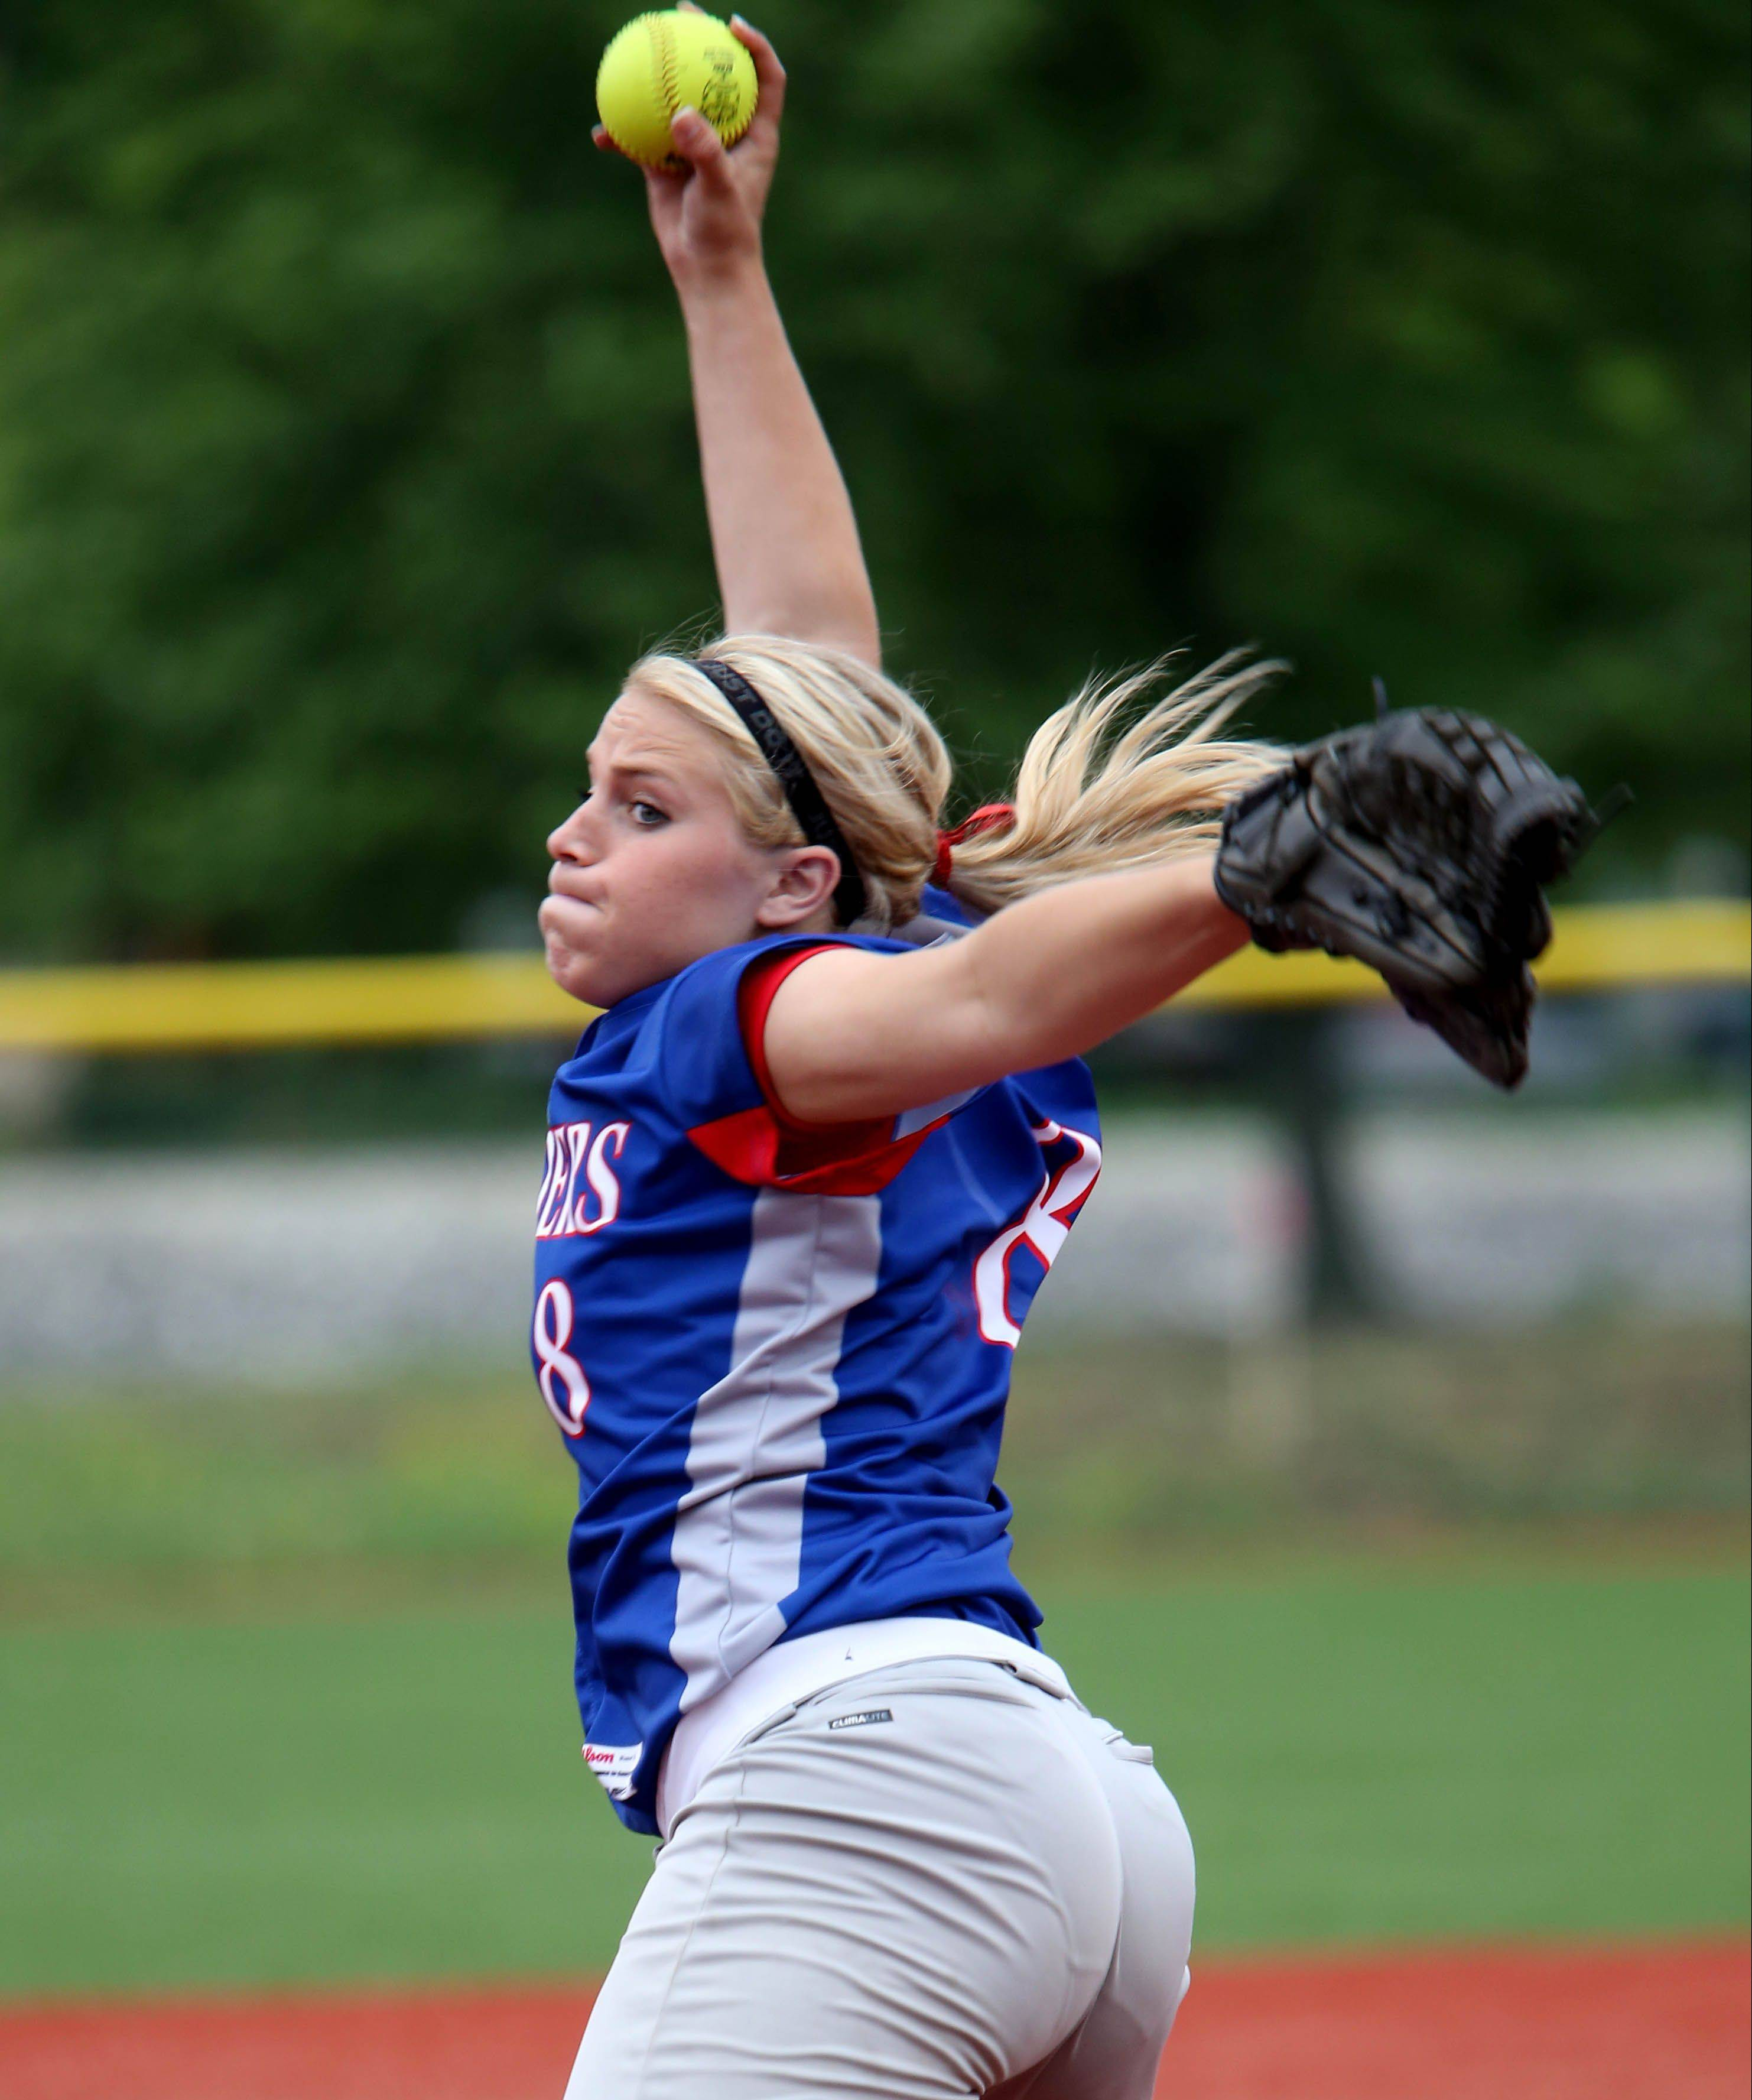 Senior Stephanie Chitkowski and her Glenbard South teammates will take on Tinley Park at 10 a.m. Friday in a Class 3A softball semifinal.